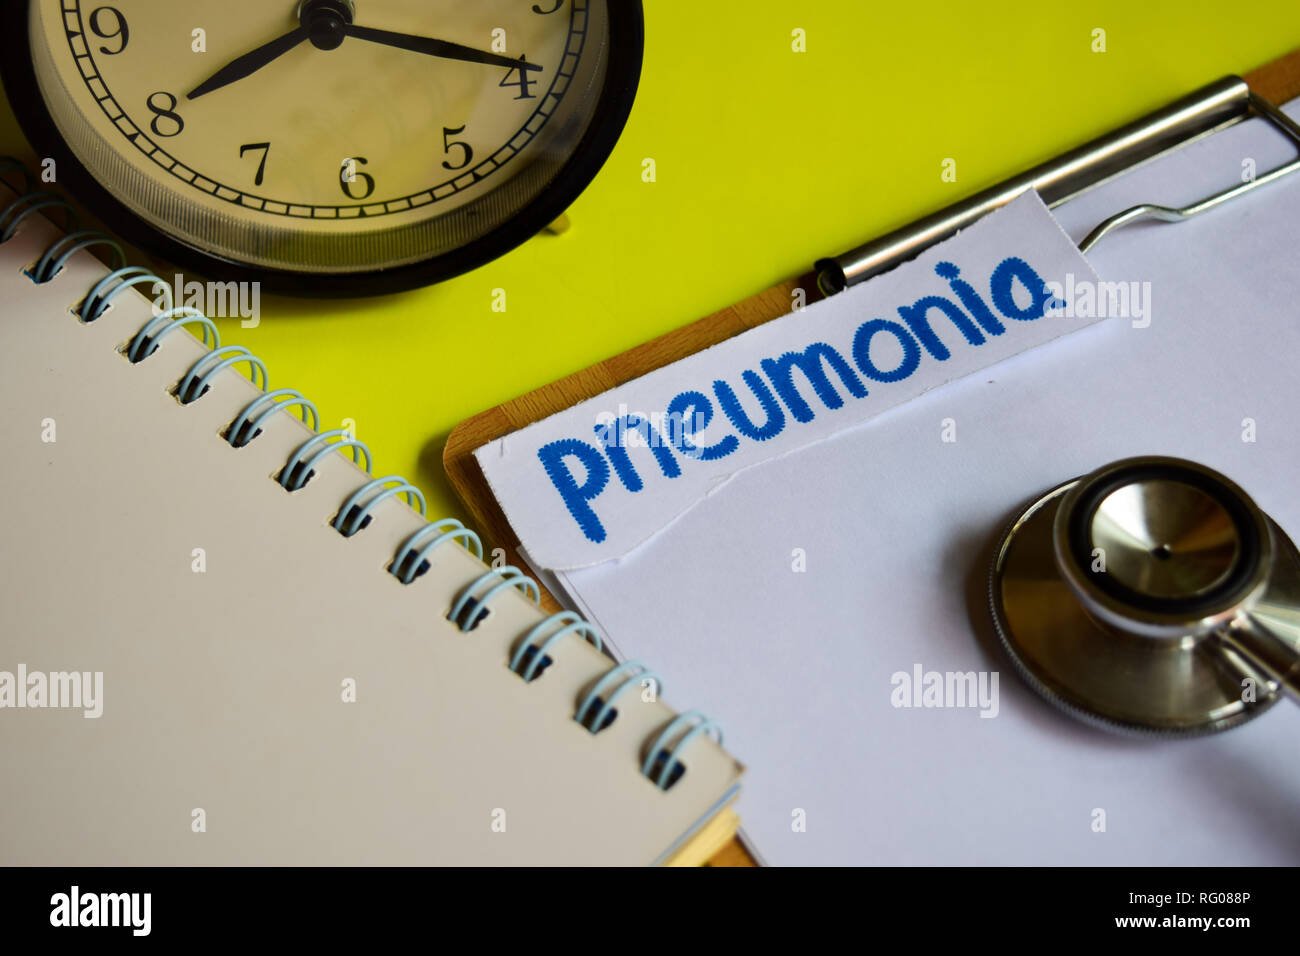 Pneumonia on healthcare concept inspiration on yellow background - Stock Image